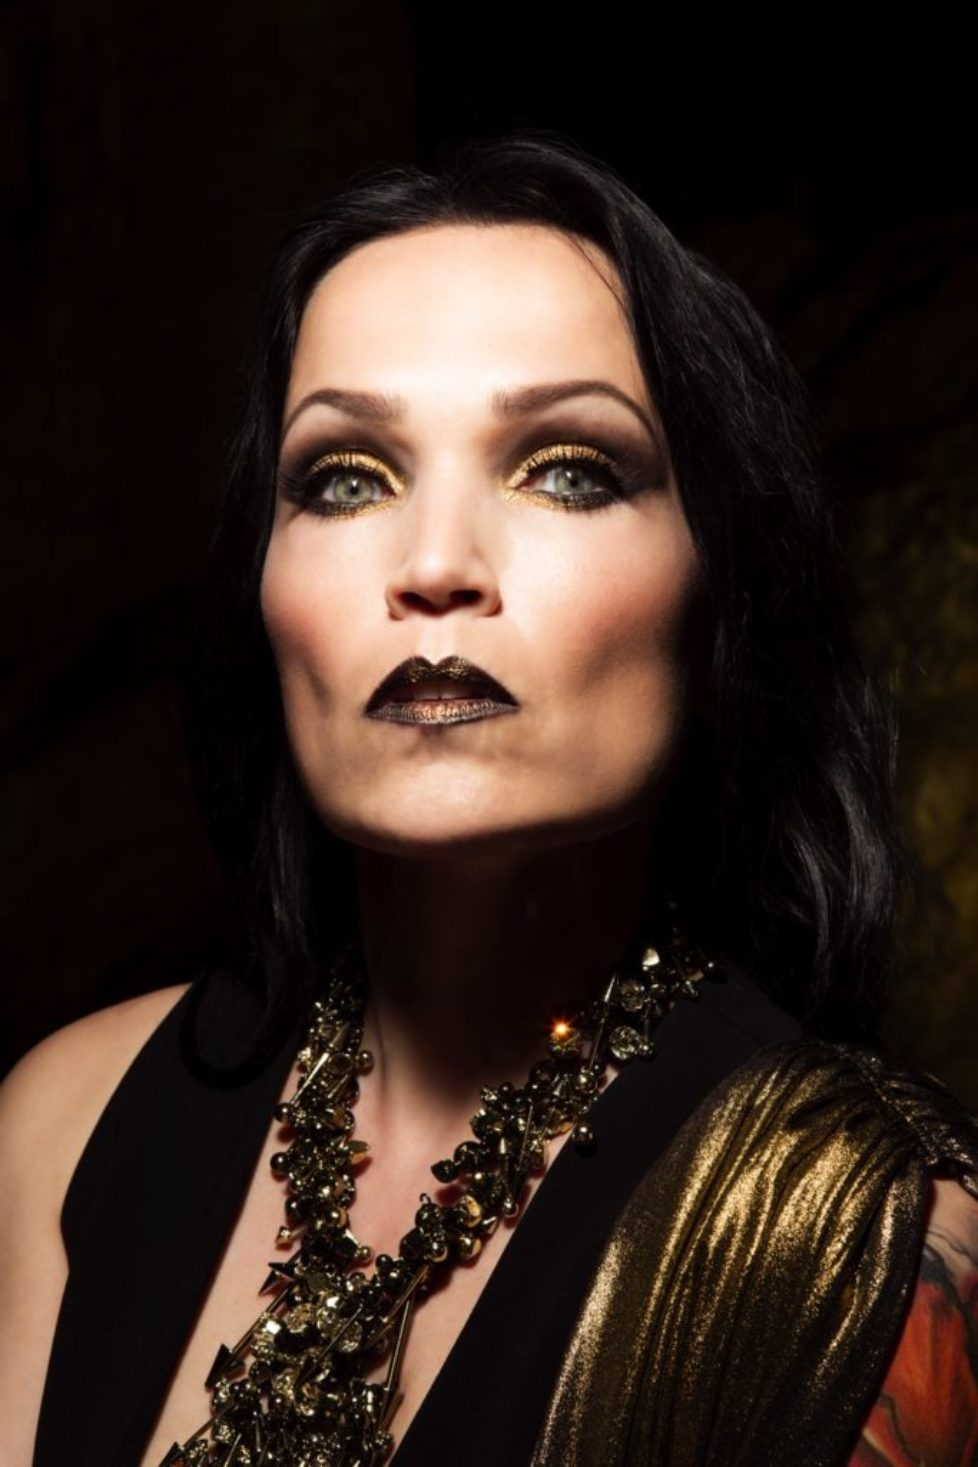 TARJA-In-The-Raw-Press-Pictures-122019-6-Copyright-earMUSIC-Photo-Credit-Tim-Tronckoe-1000px